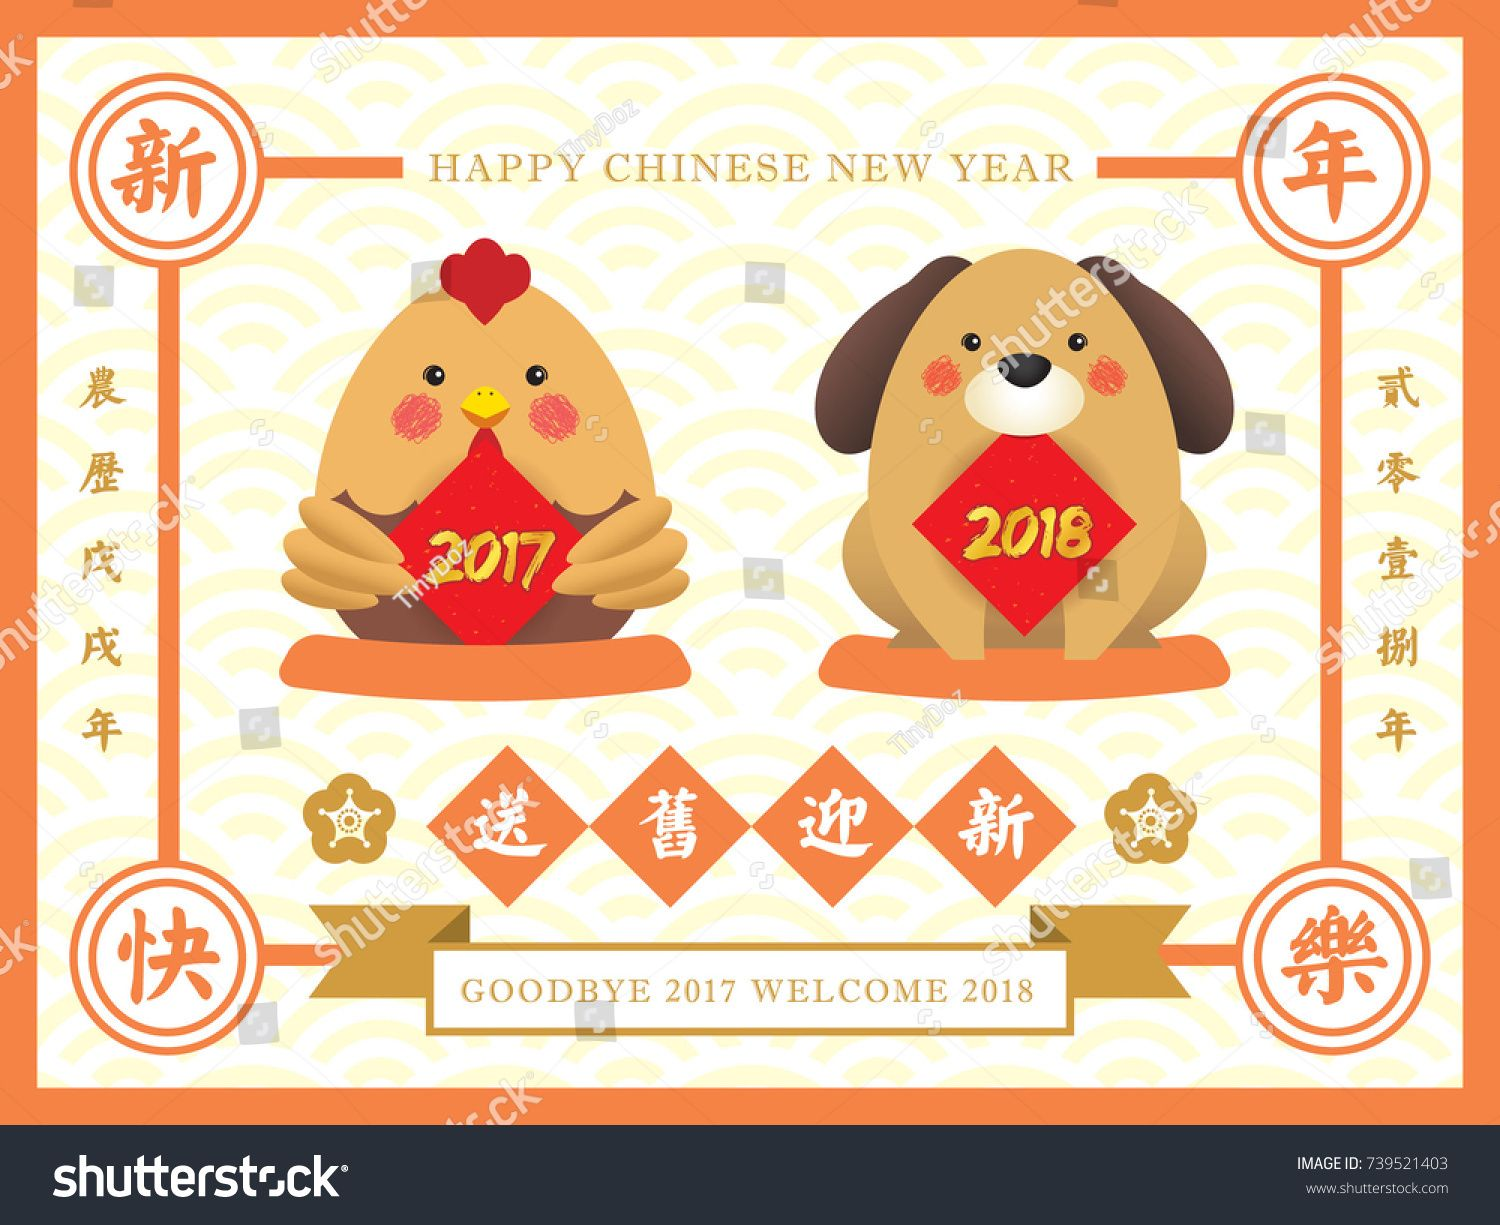 Chinese new year greeting card with cute cartoon chicken